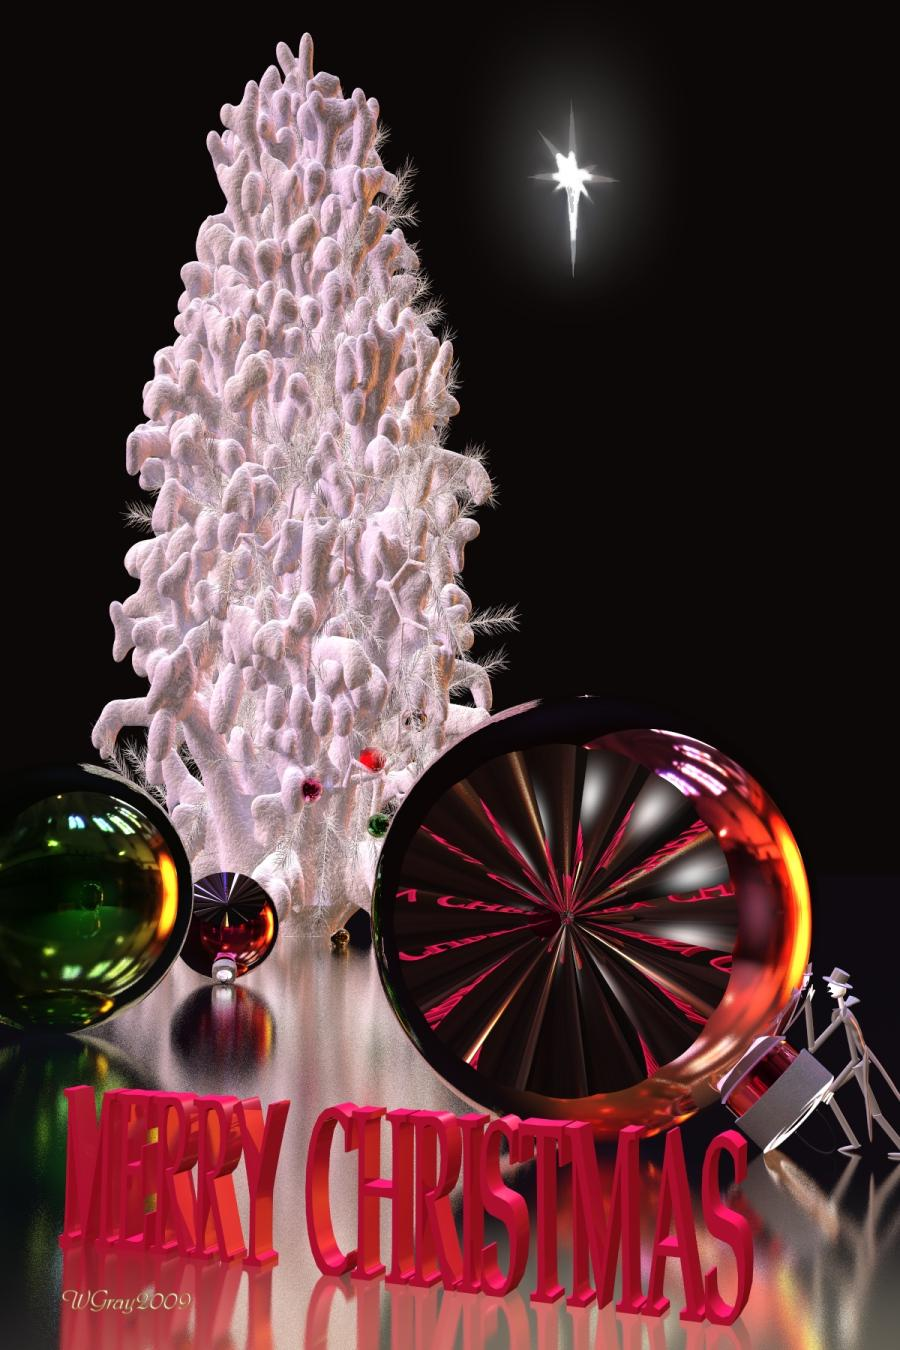 Merry Christmas To All At Renderosity by skiwillgee